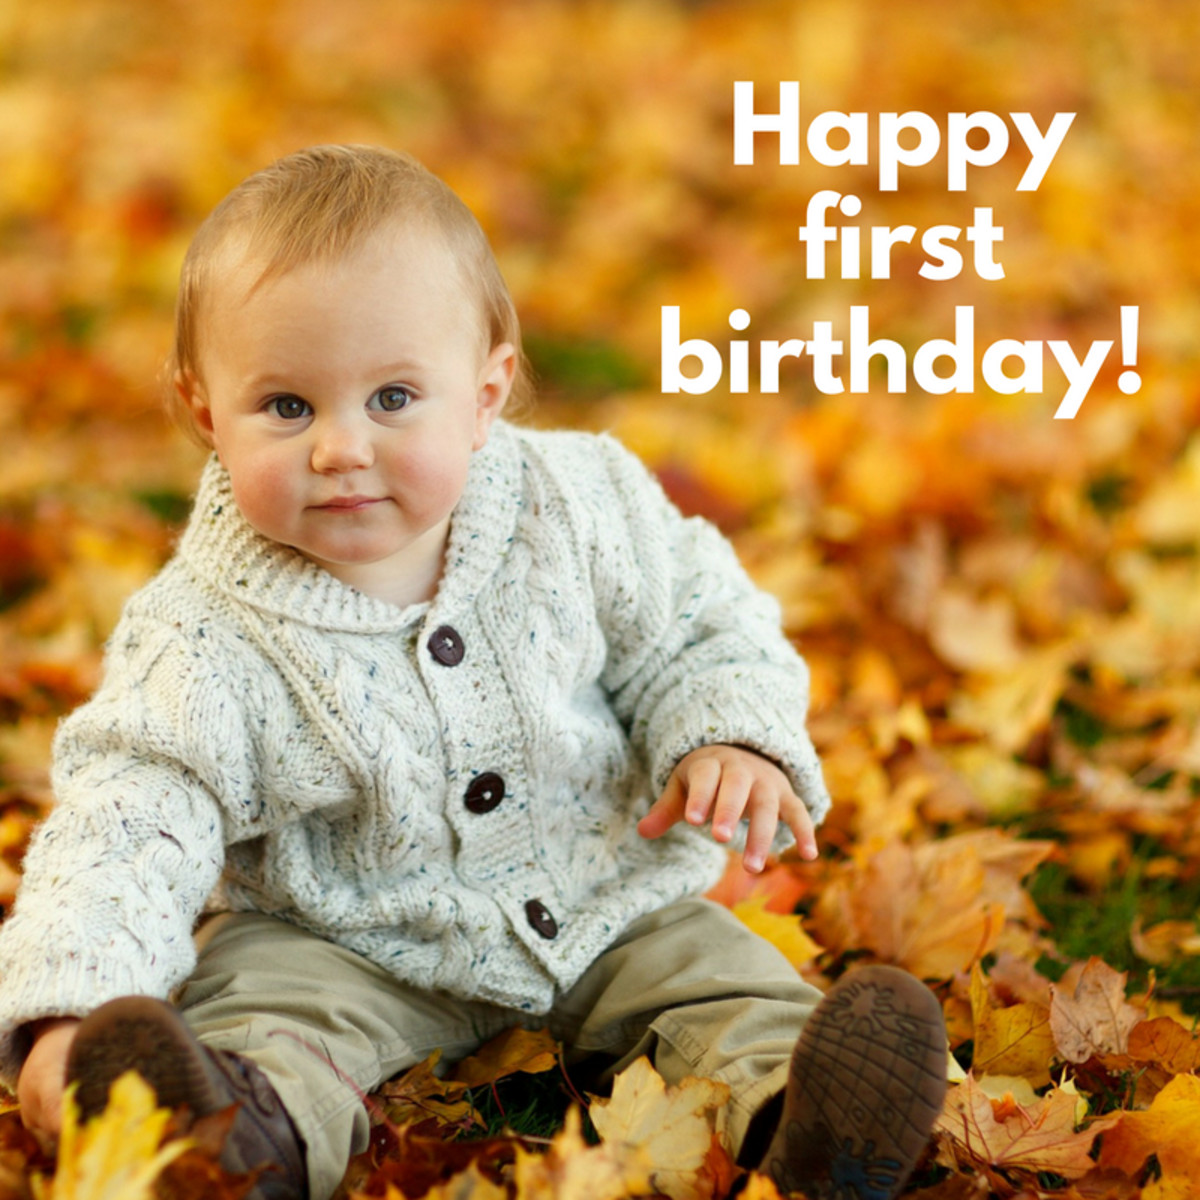 You are the reason your parents are smiling today. Happy first birthday!